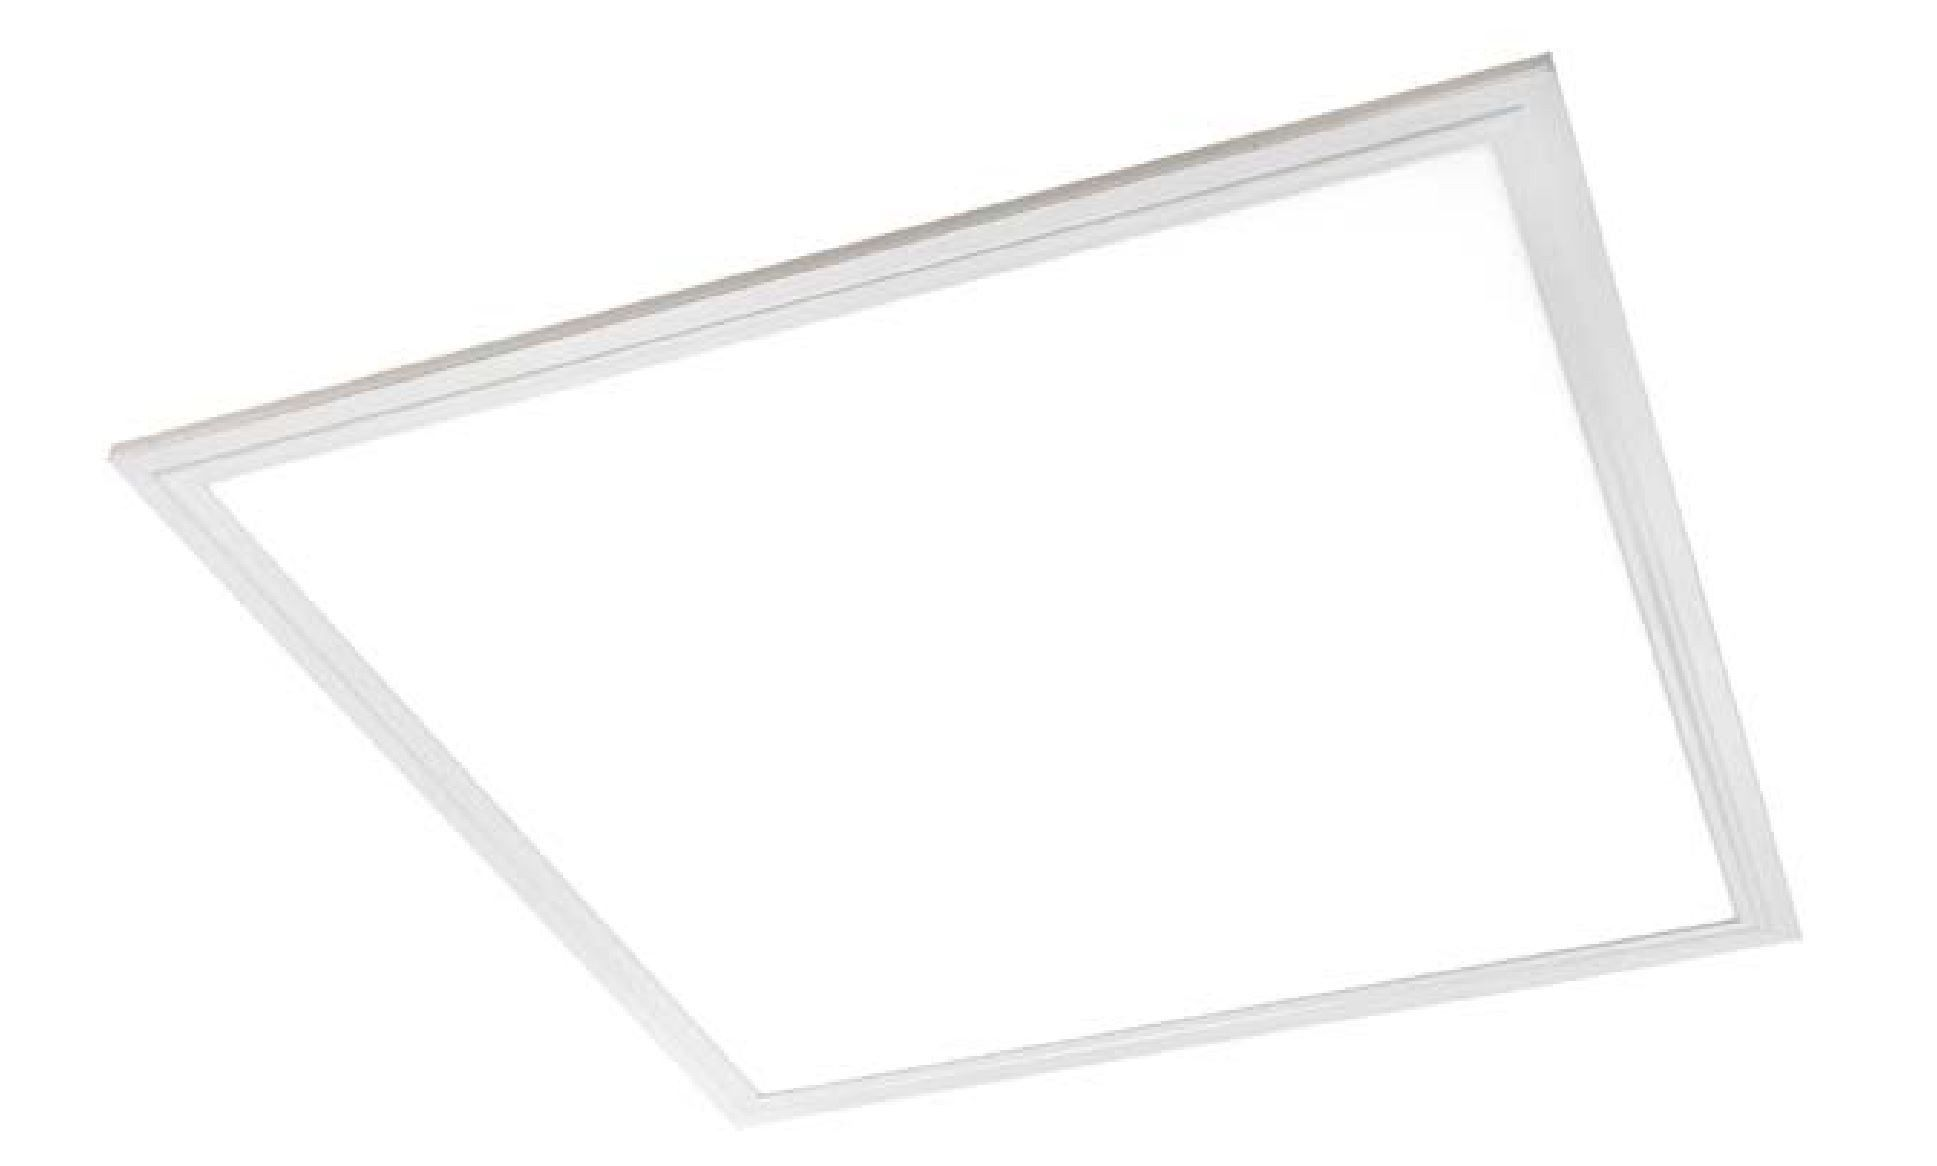 Alcon Lighting 14021 Edge Lit Architectural Led 2x2 Flat